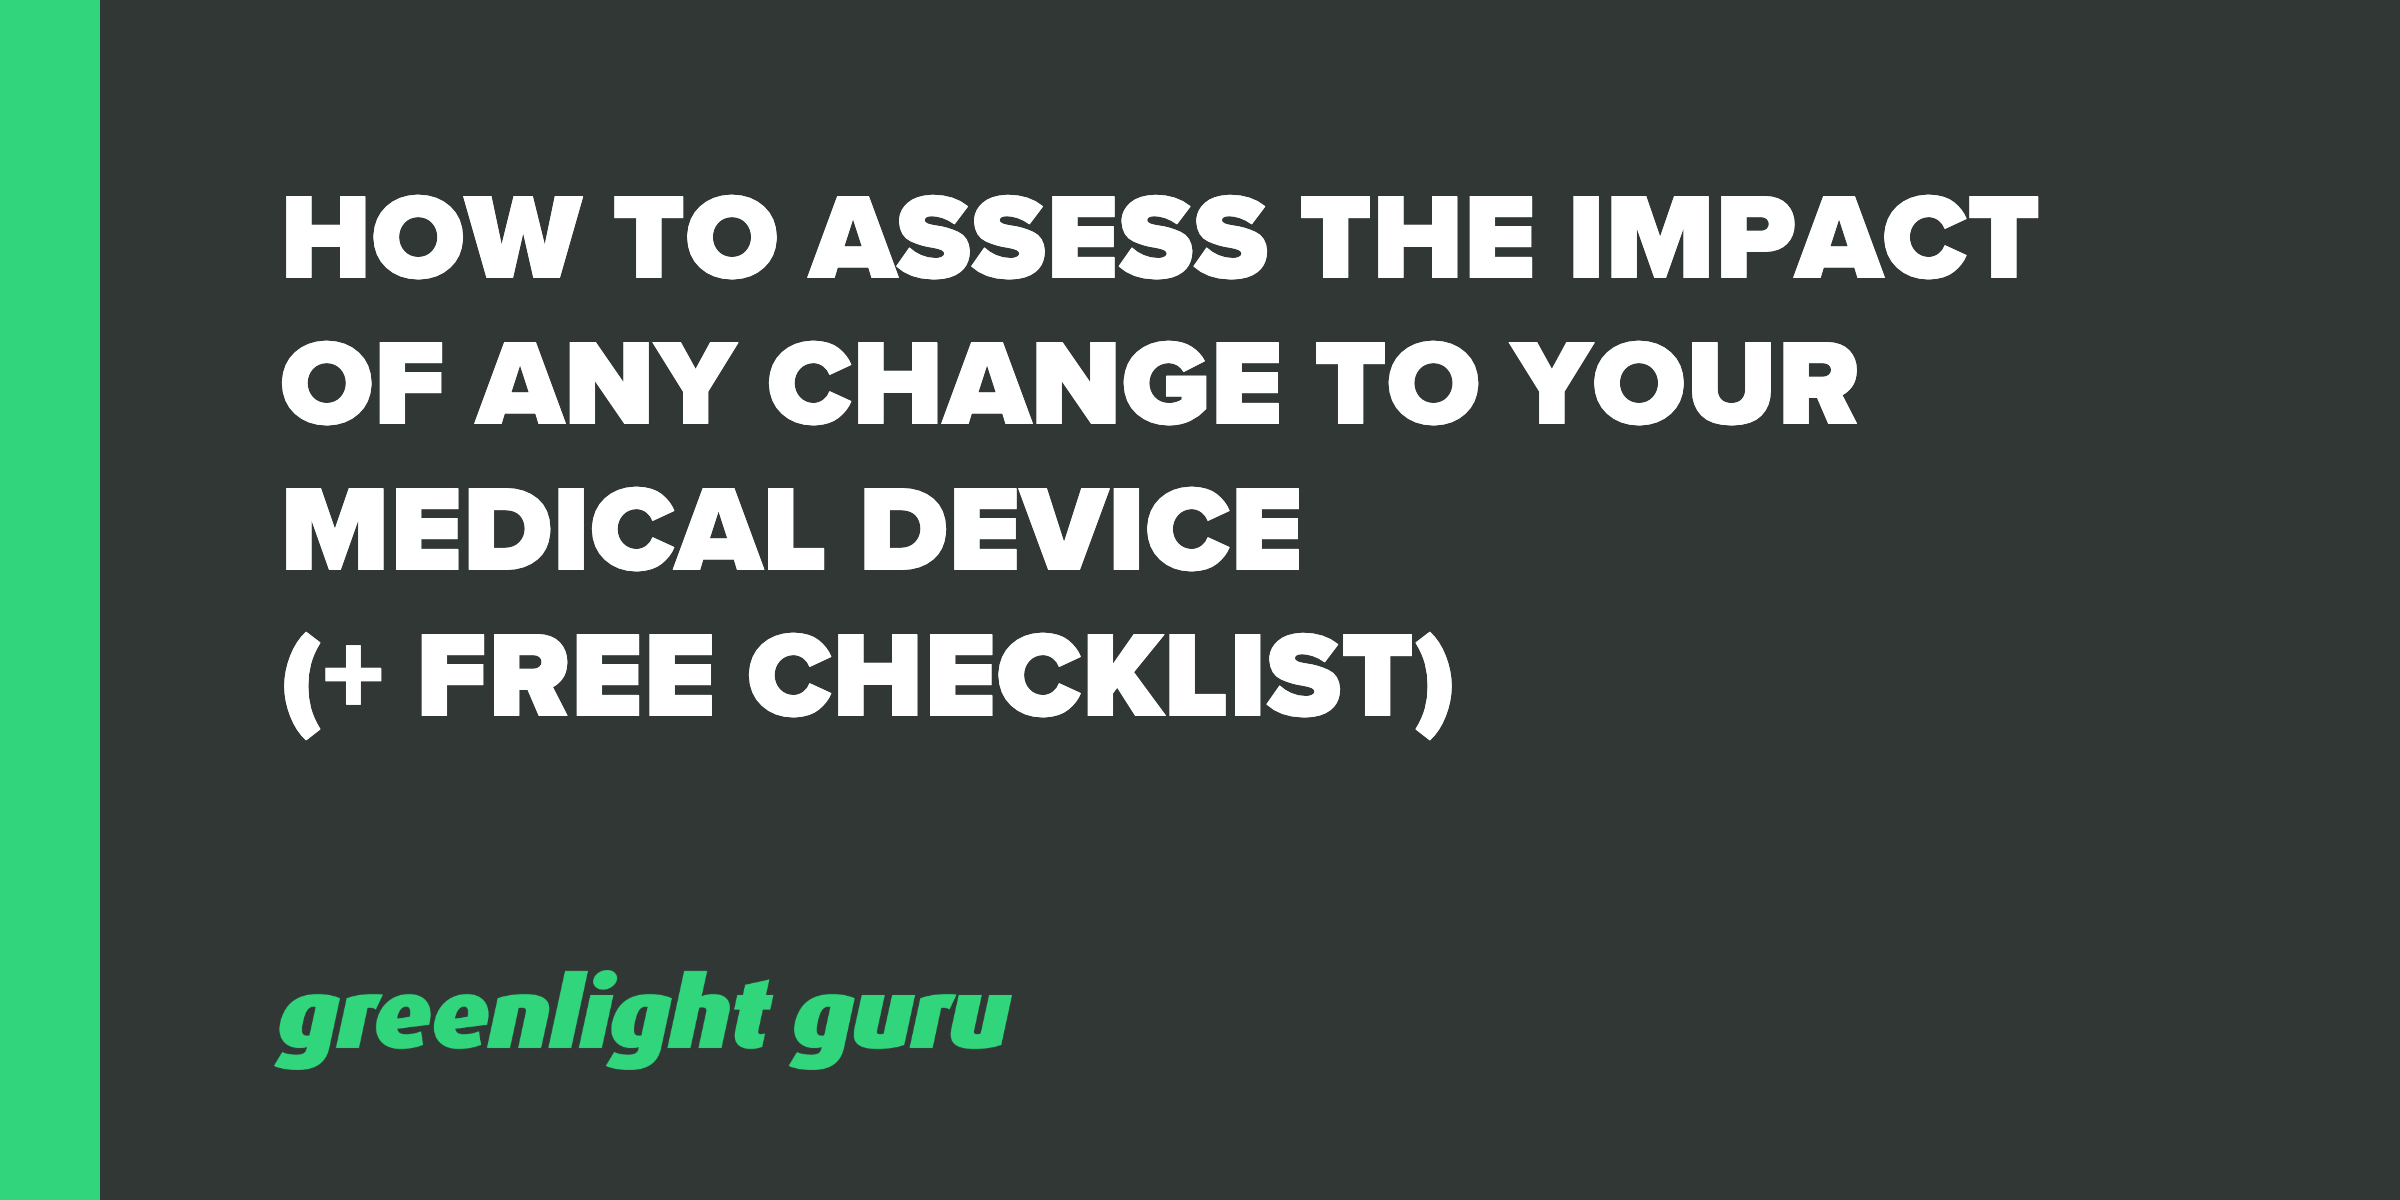 How to Assess the Impact of Any Change to your Medical Device (+ Free Checklist)